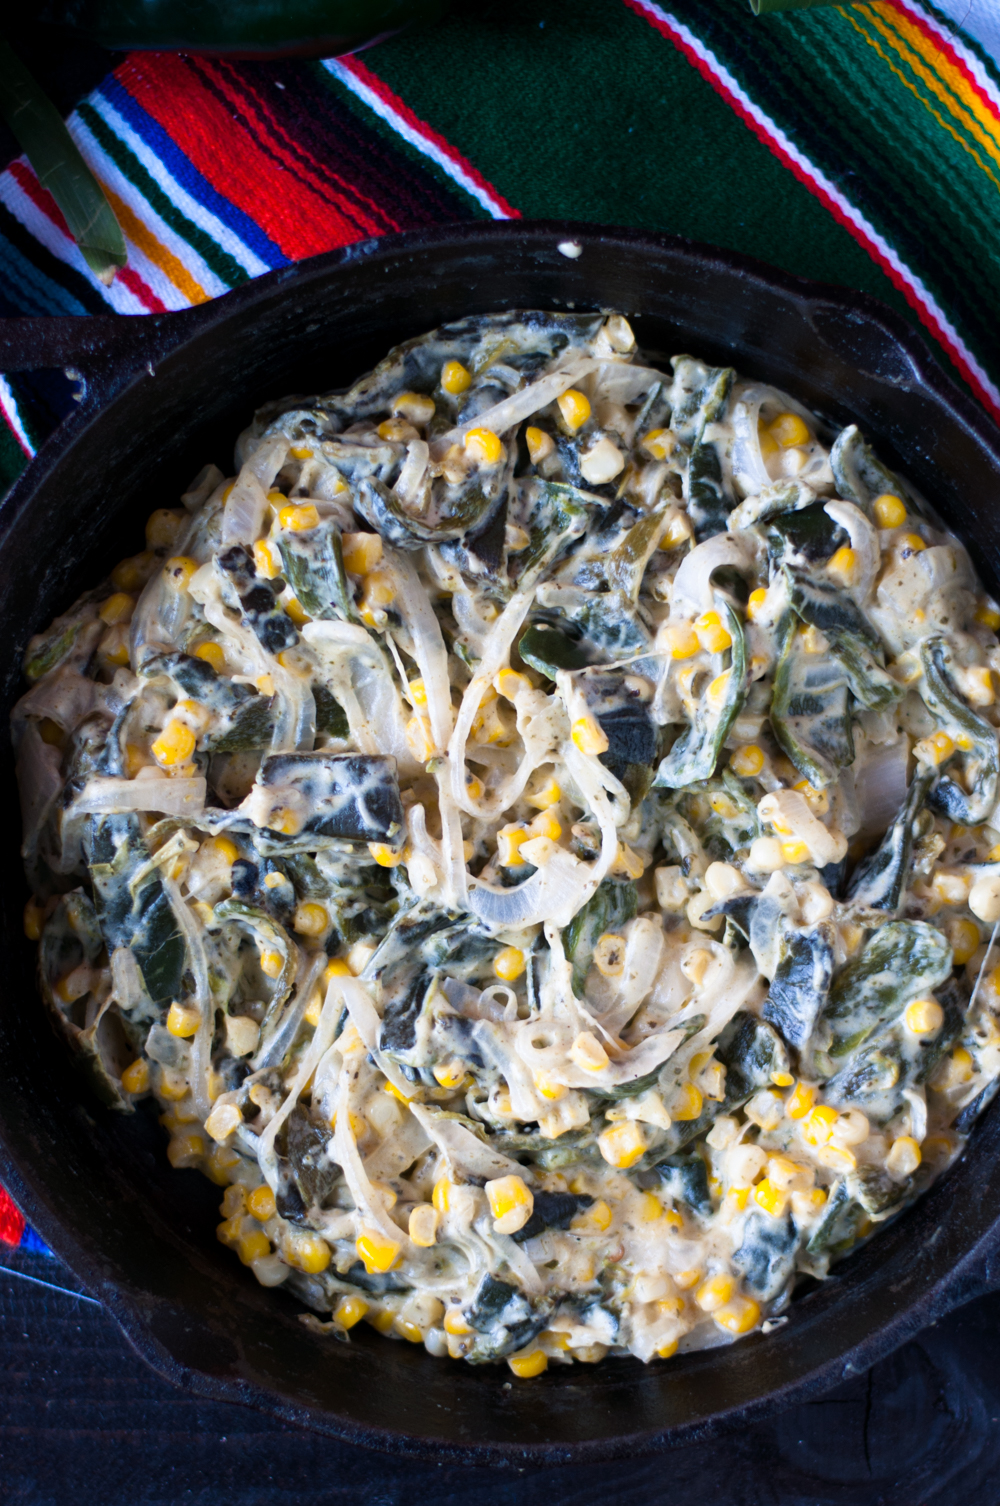 Inspired by traditional Mexican Rajas con Crema, these Vegan Creamy Rajas are dairy-free! #vegan #mexican